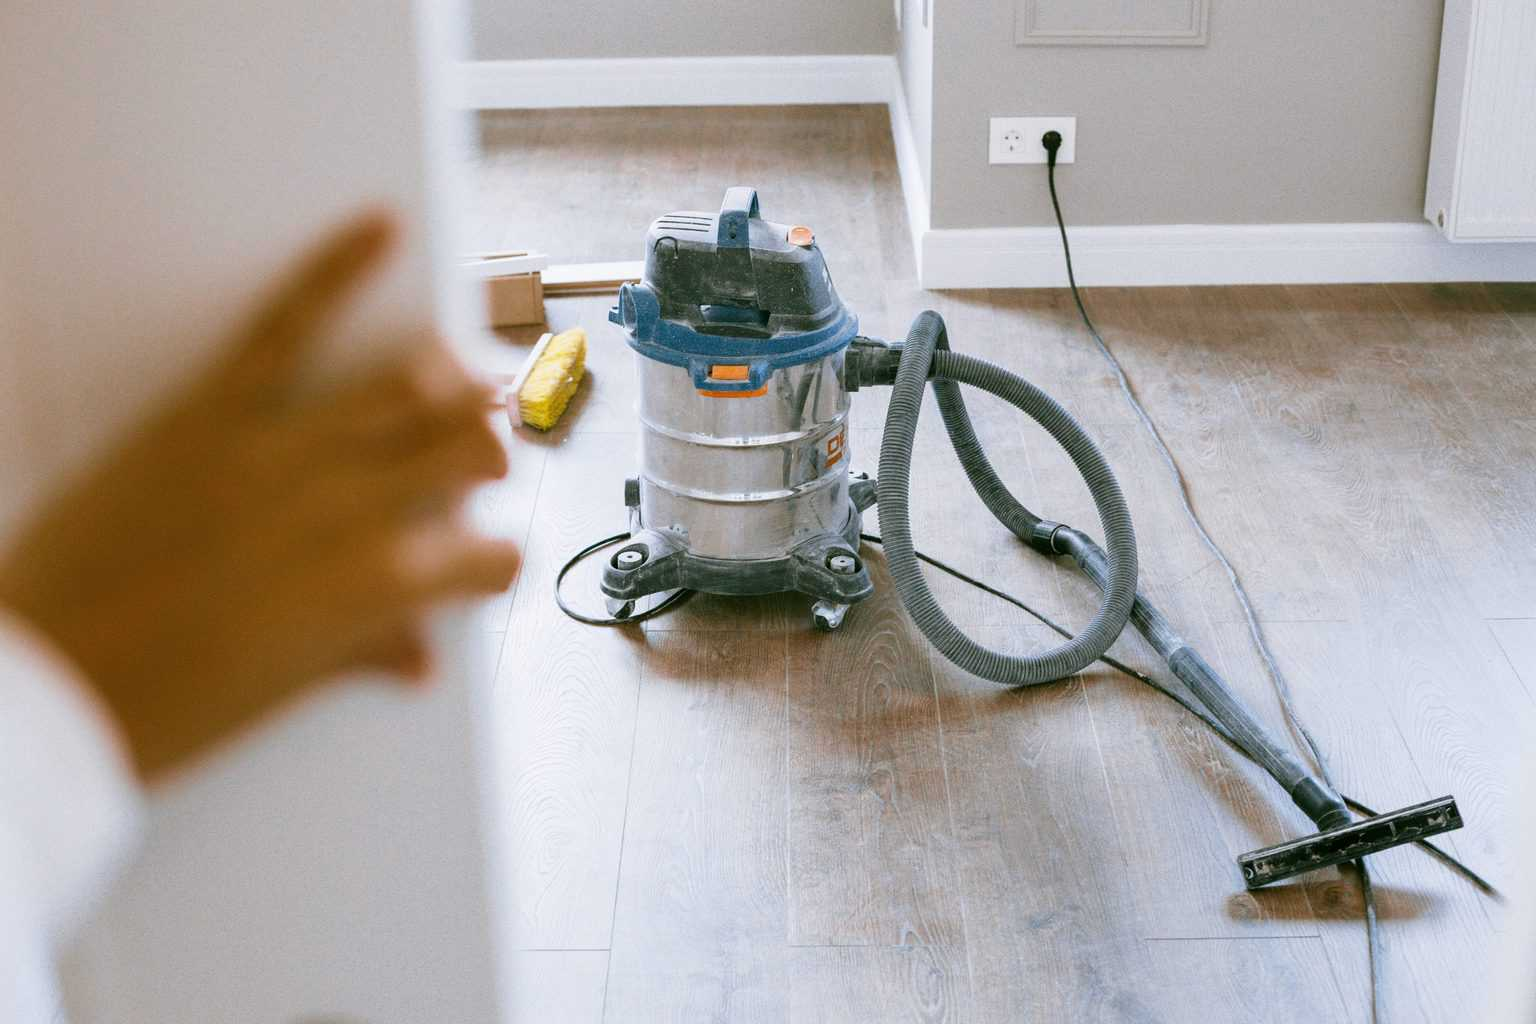 How to clean a shop vac filter